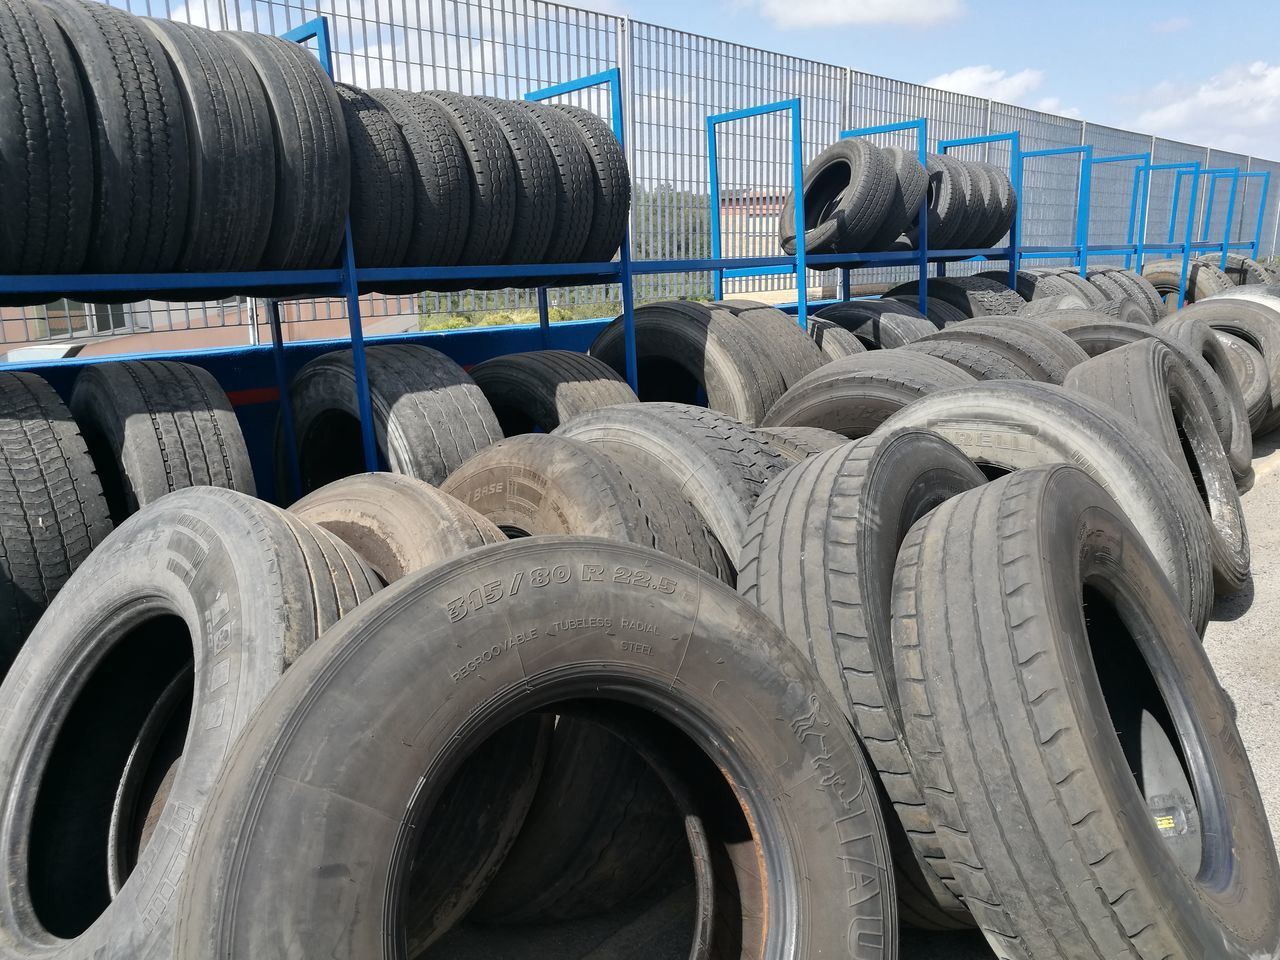 tire, large group of objects, transportation, wheel, arrangement, day, no people, freight transportation, outdoors, road, close-up